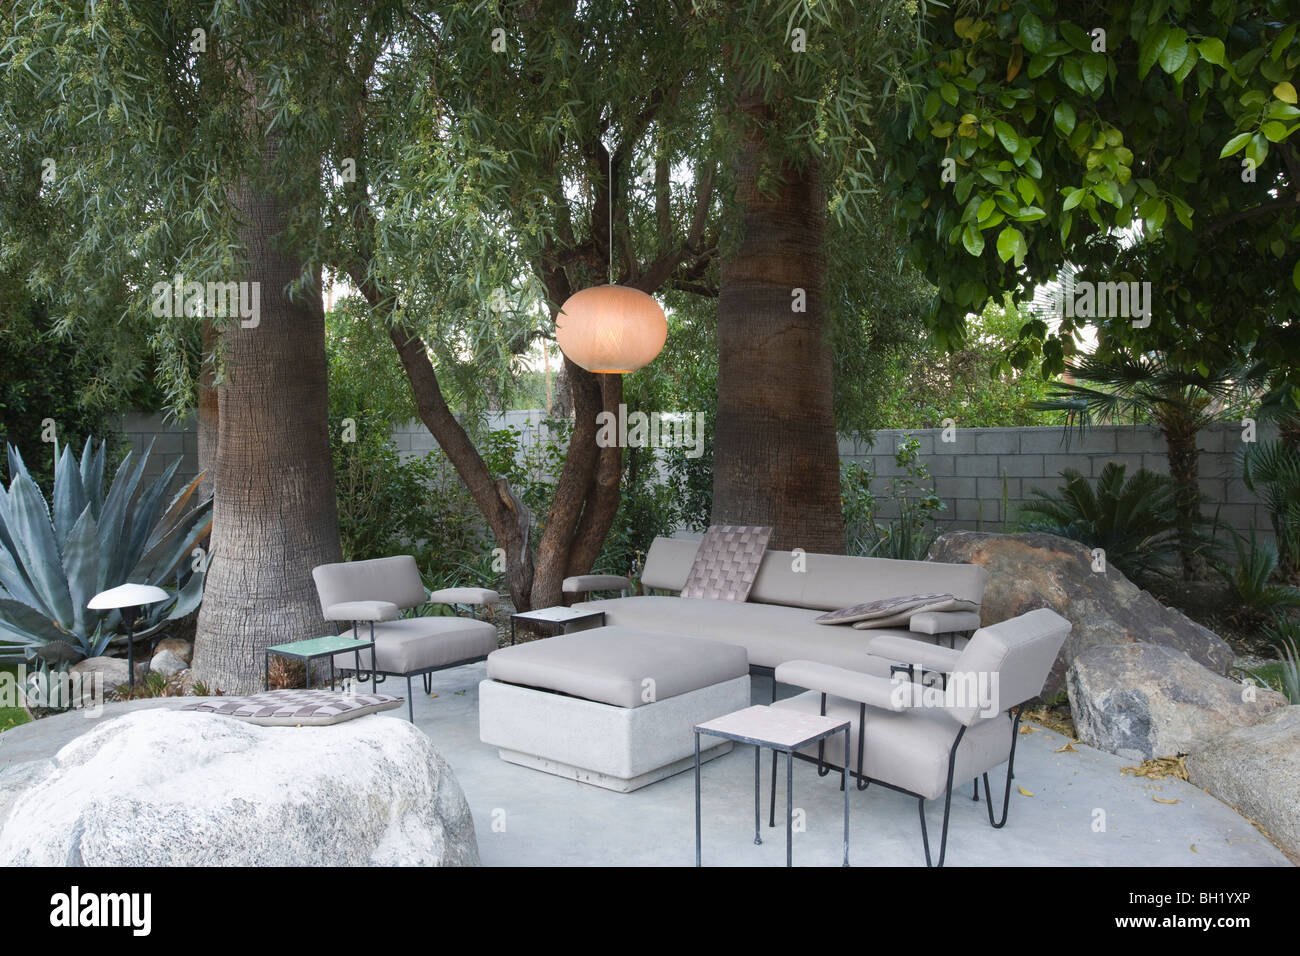 Outdoor garden furniture in Palm Springs home - Outdoor Garden Furniture In Palm Springs Home Stock Photo: 27703390